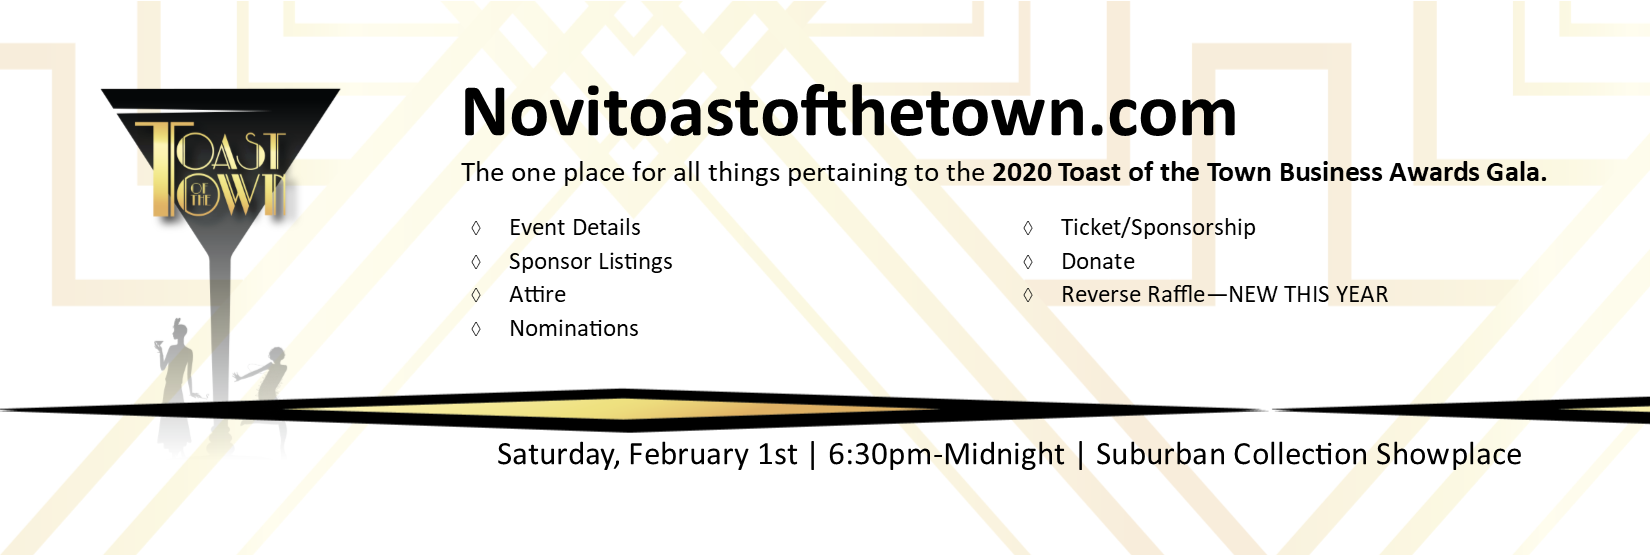 Toast-of-the-Town-Website-Banner(3).png